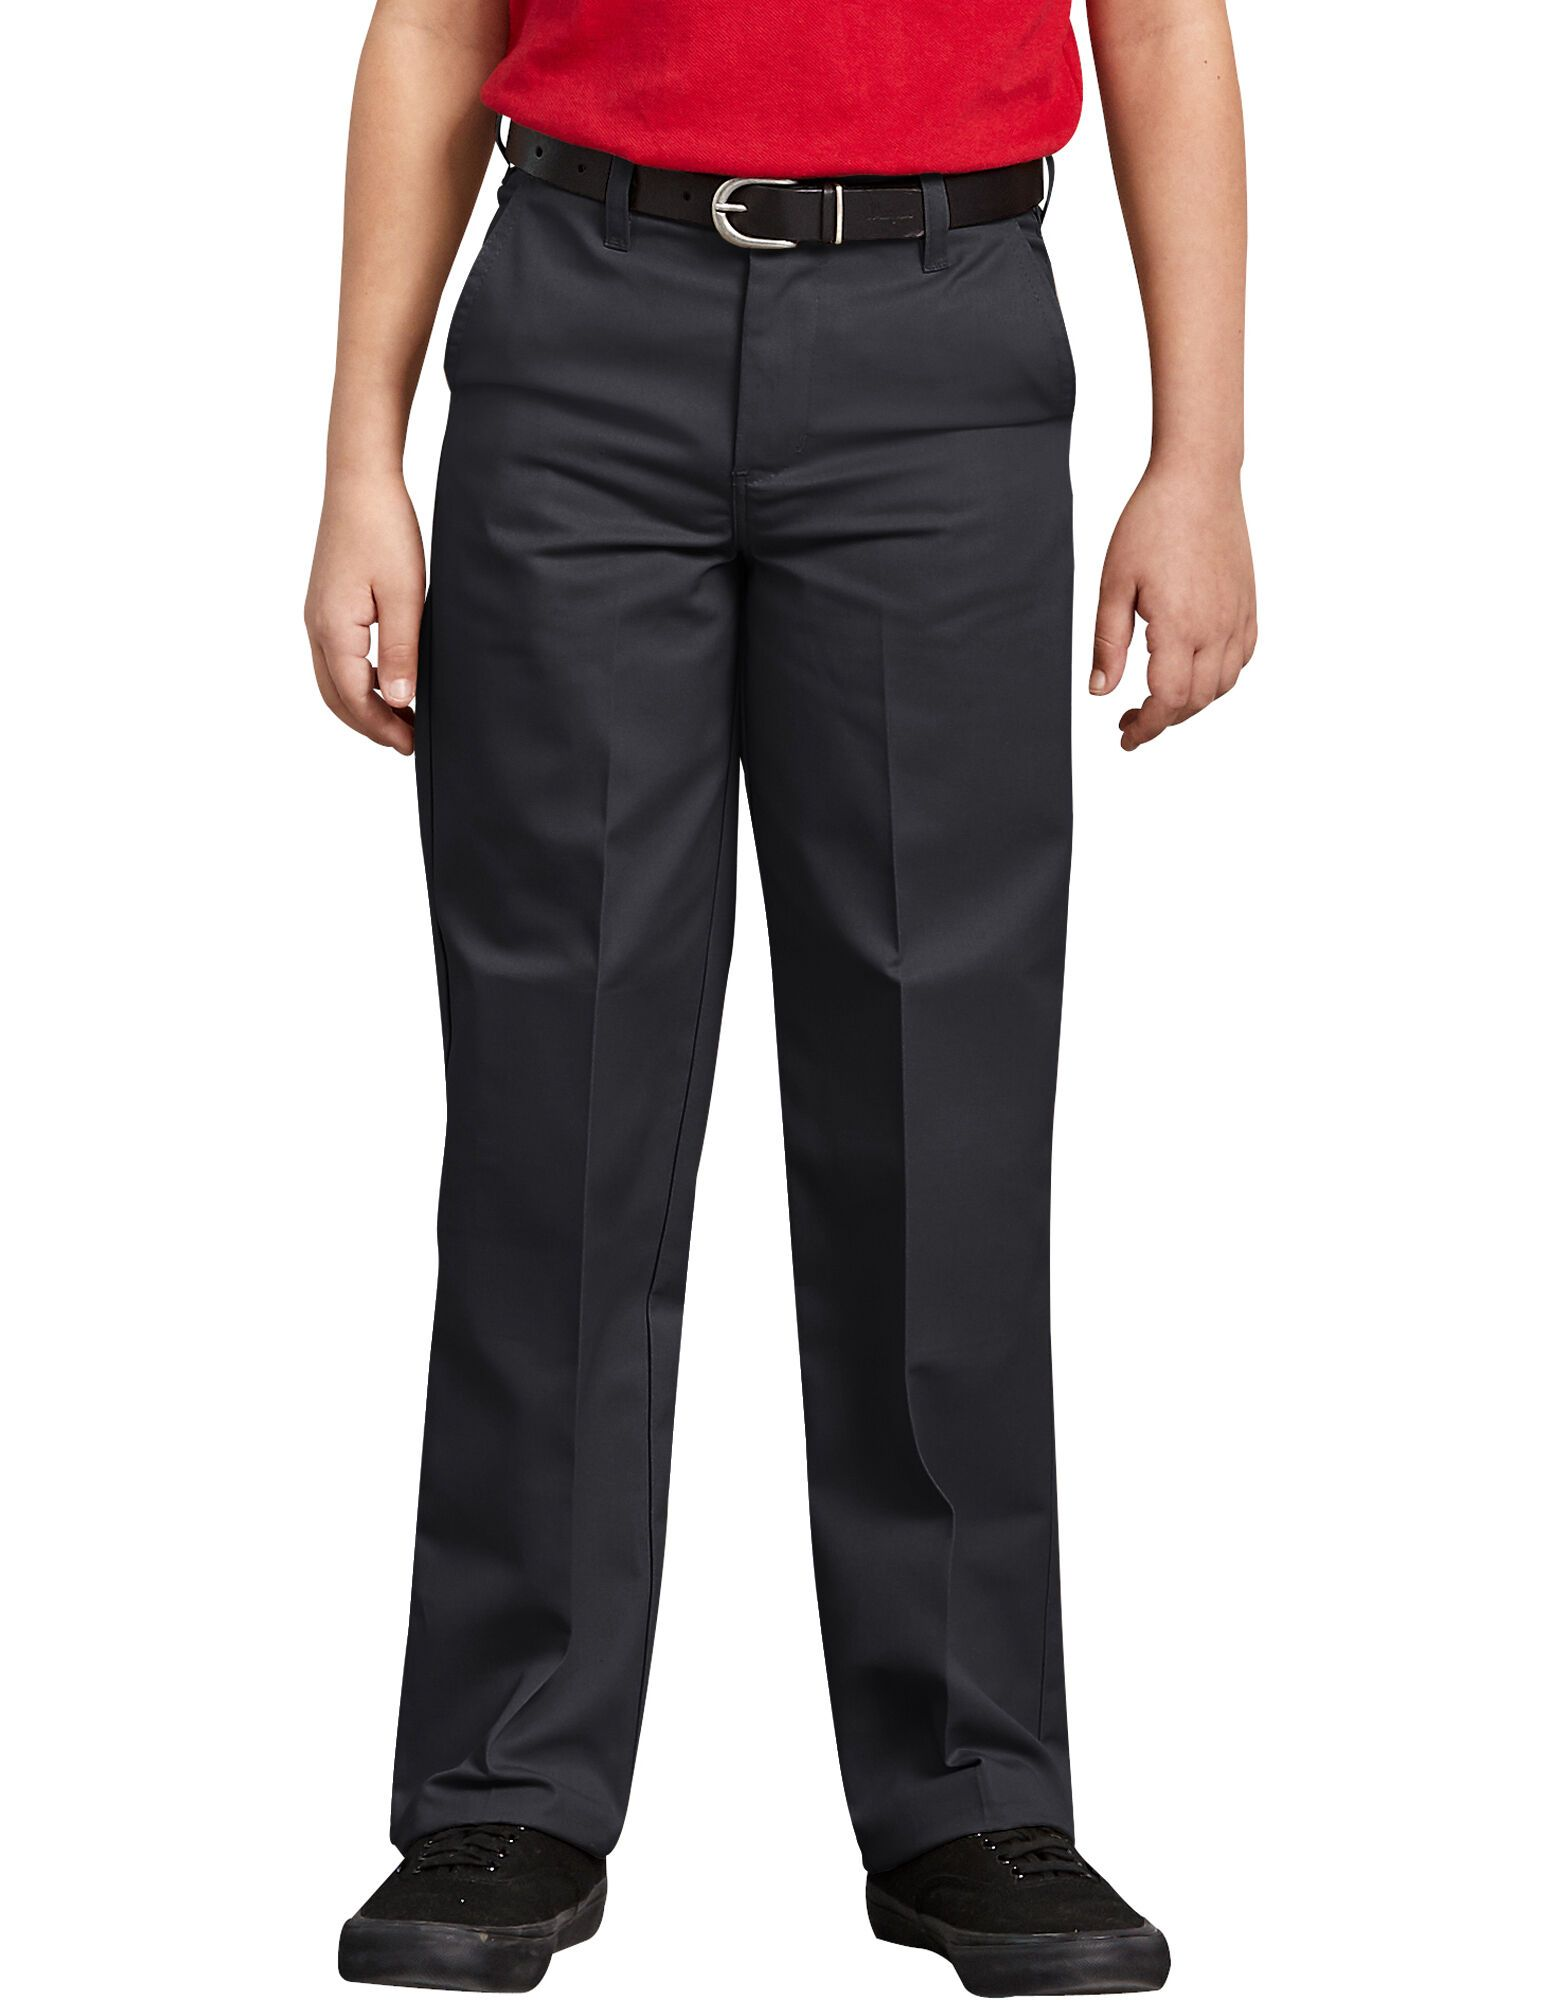 Boys Classic Fit Straight Leg Flat Front Pants, 8-20-DK